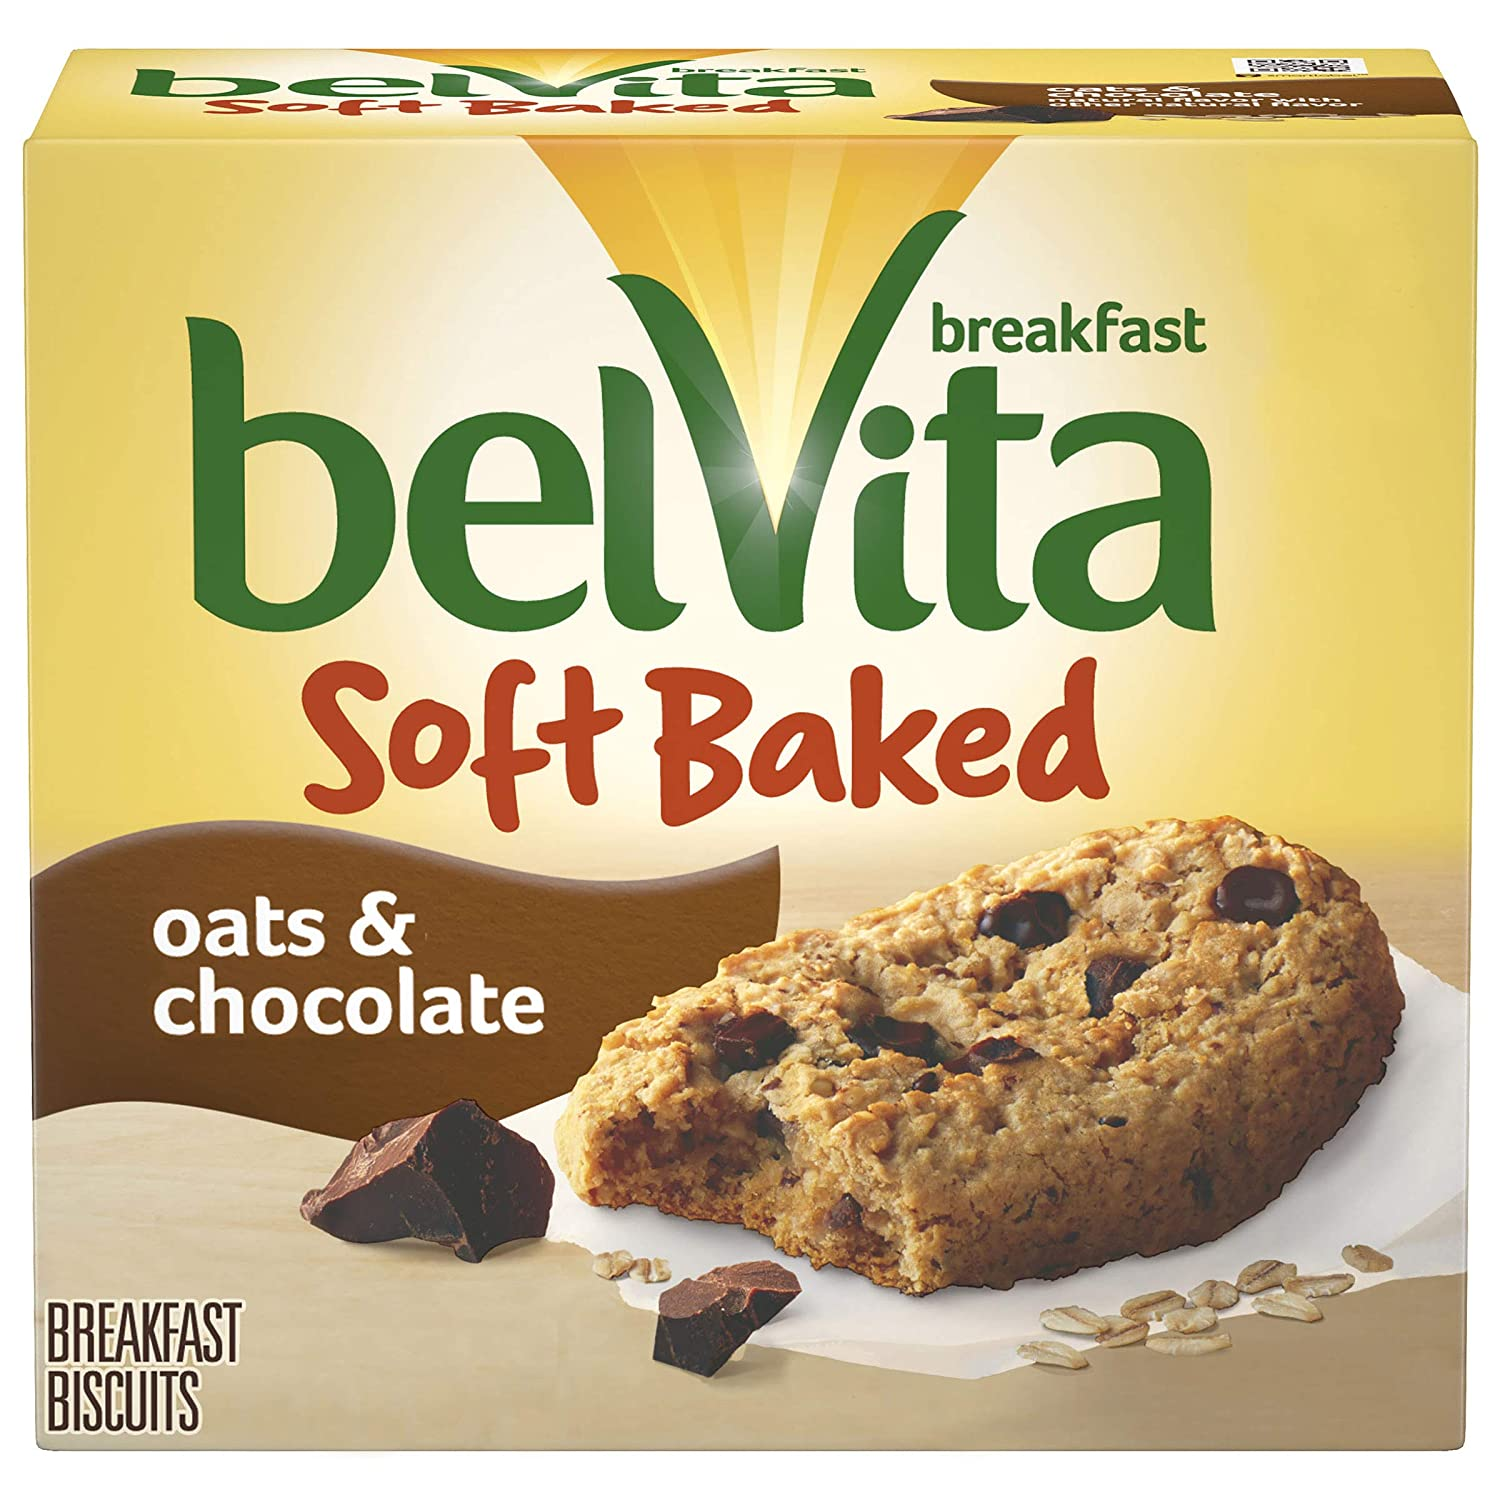 belVita Soft Baked Oats & Chocolate Breakfast Biscuits, 5 Packs (1 Biscuit Per Pack)